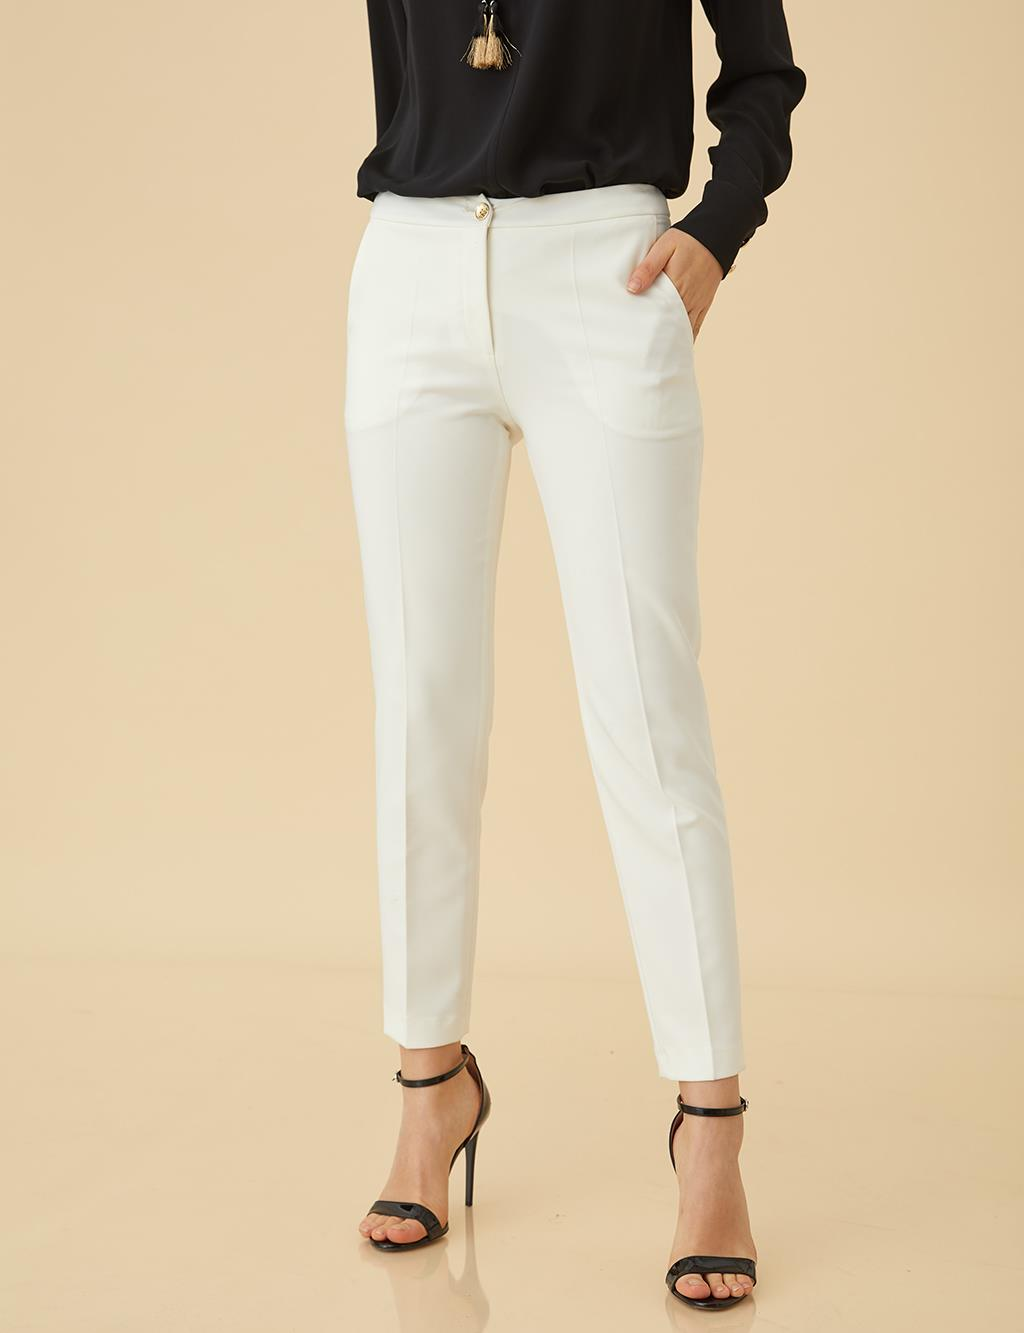 Basic Tight Pants SZ-19501 Ecru